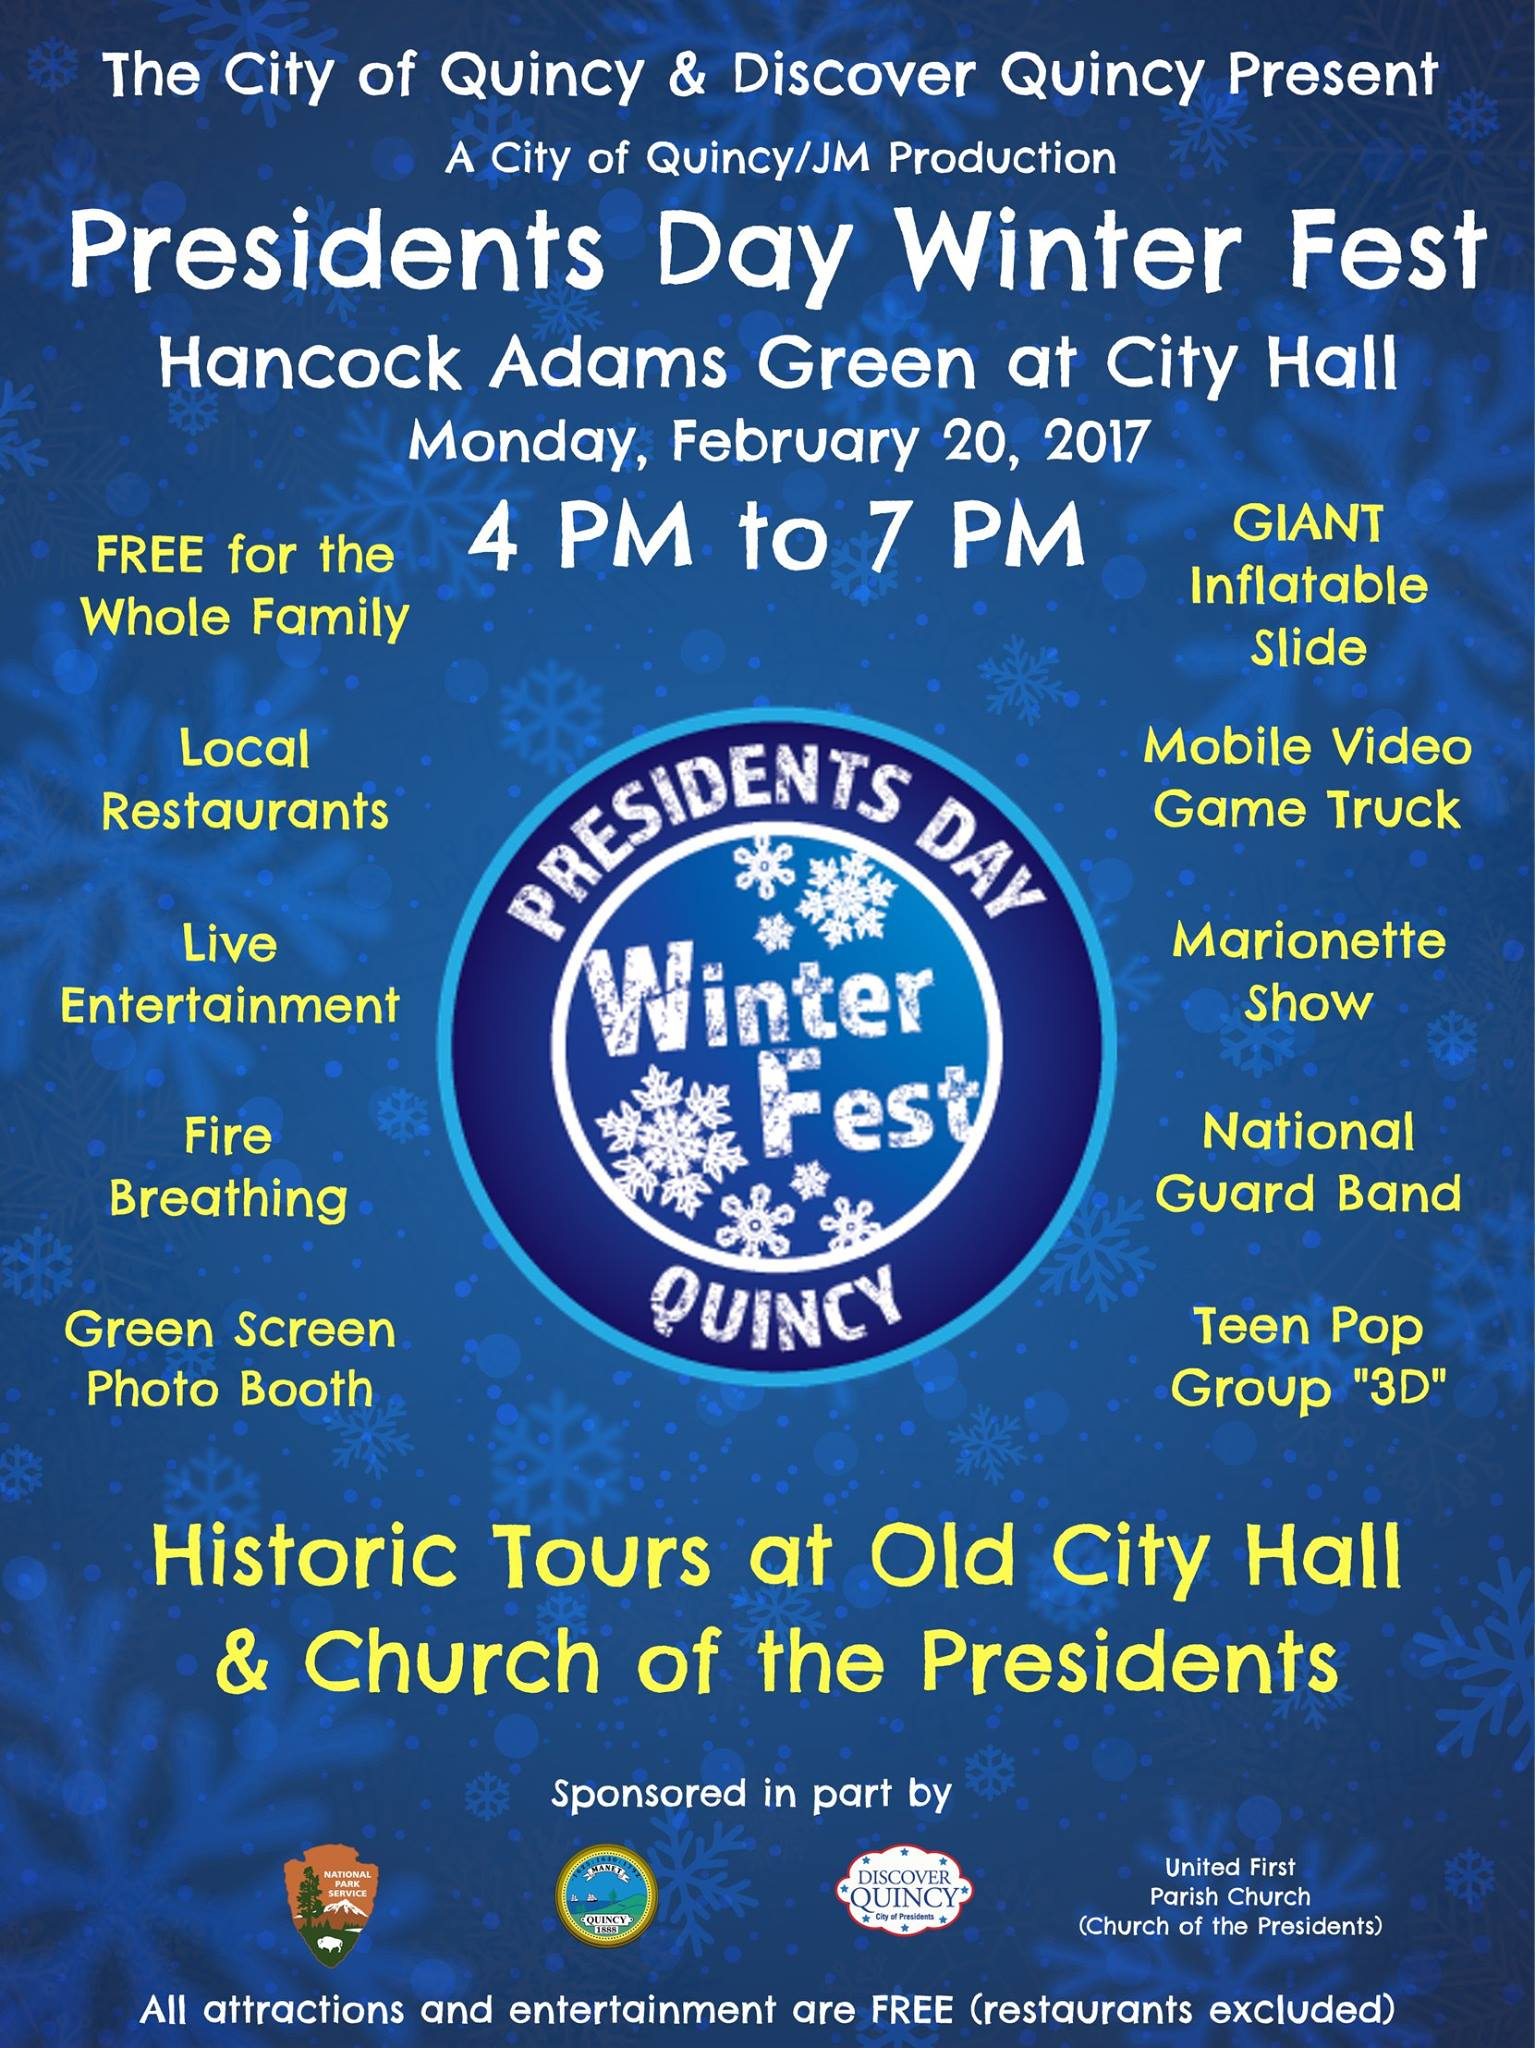 Cucina Mia Quincy Hours President S Day Winterfest 2017 In Quincy Ma 365 Things To Do In